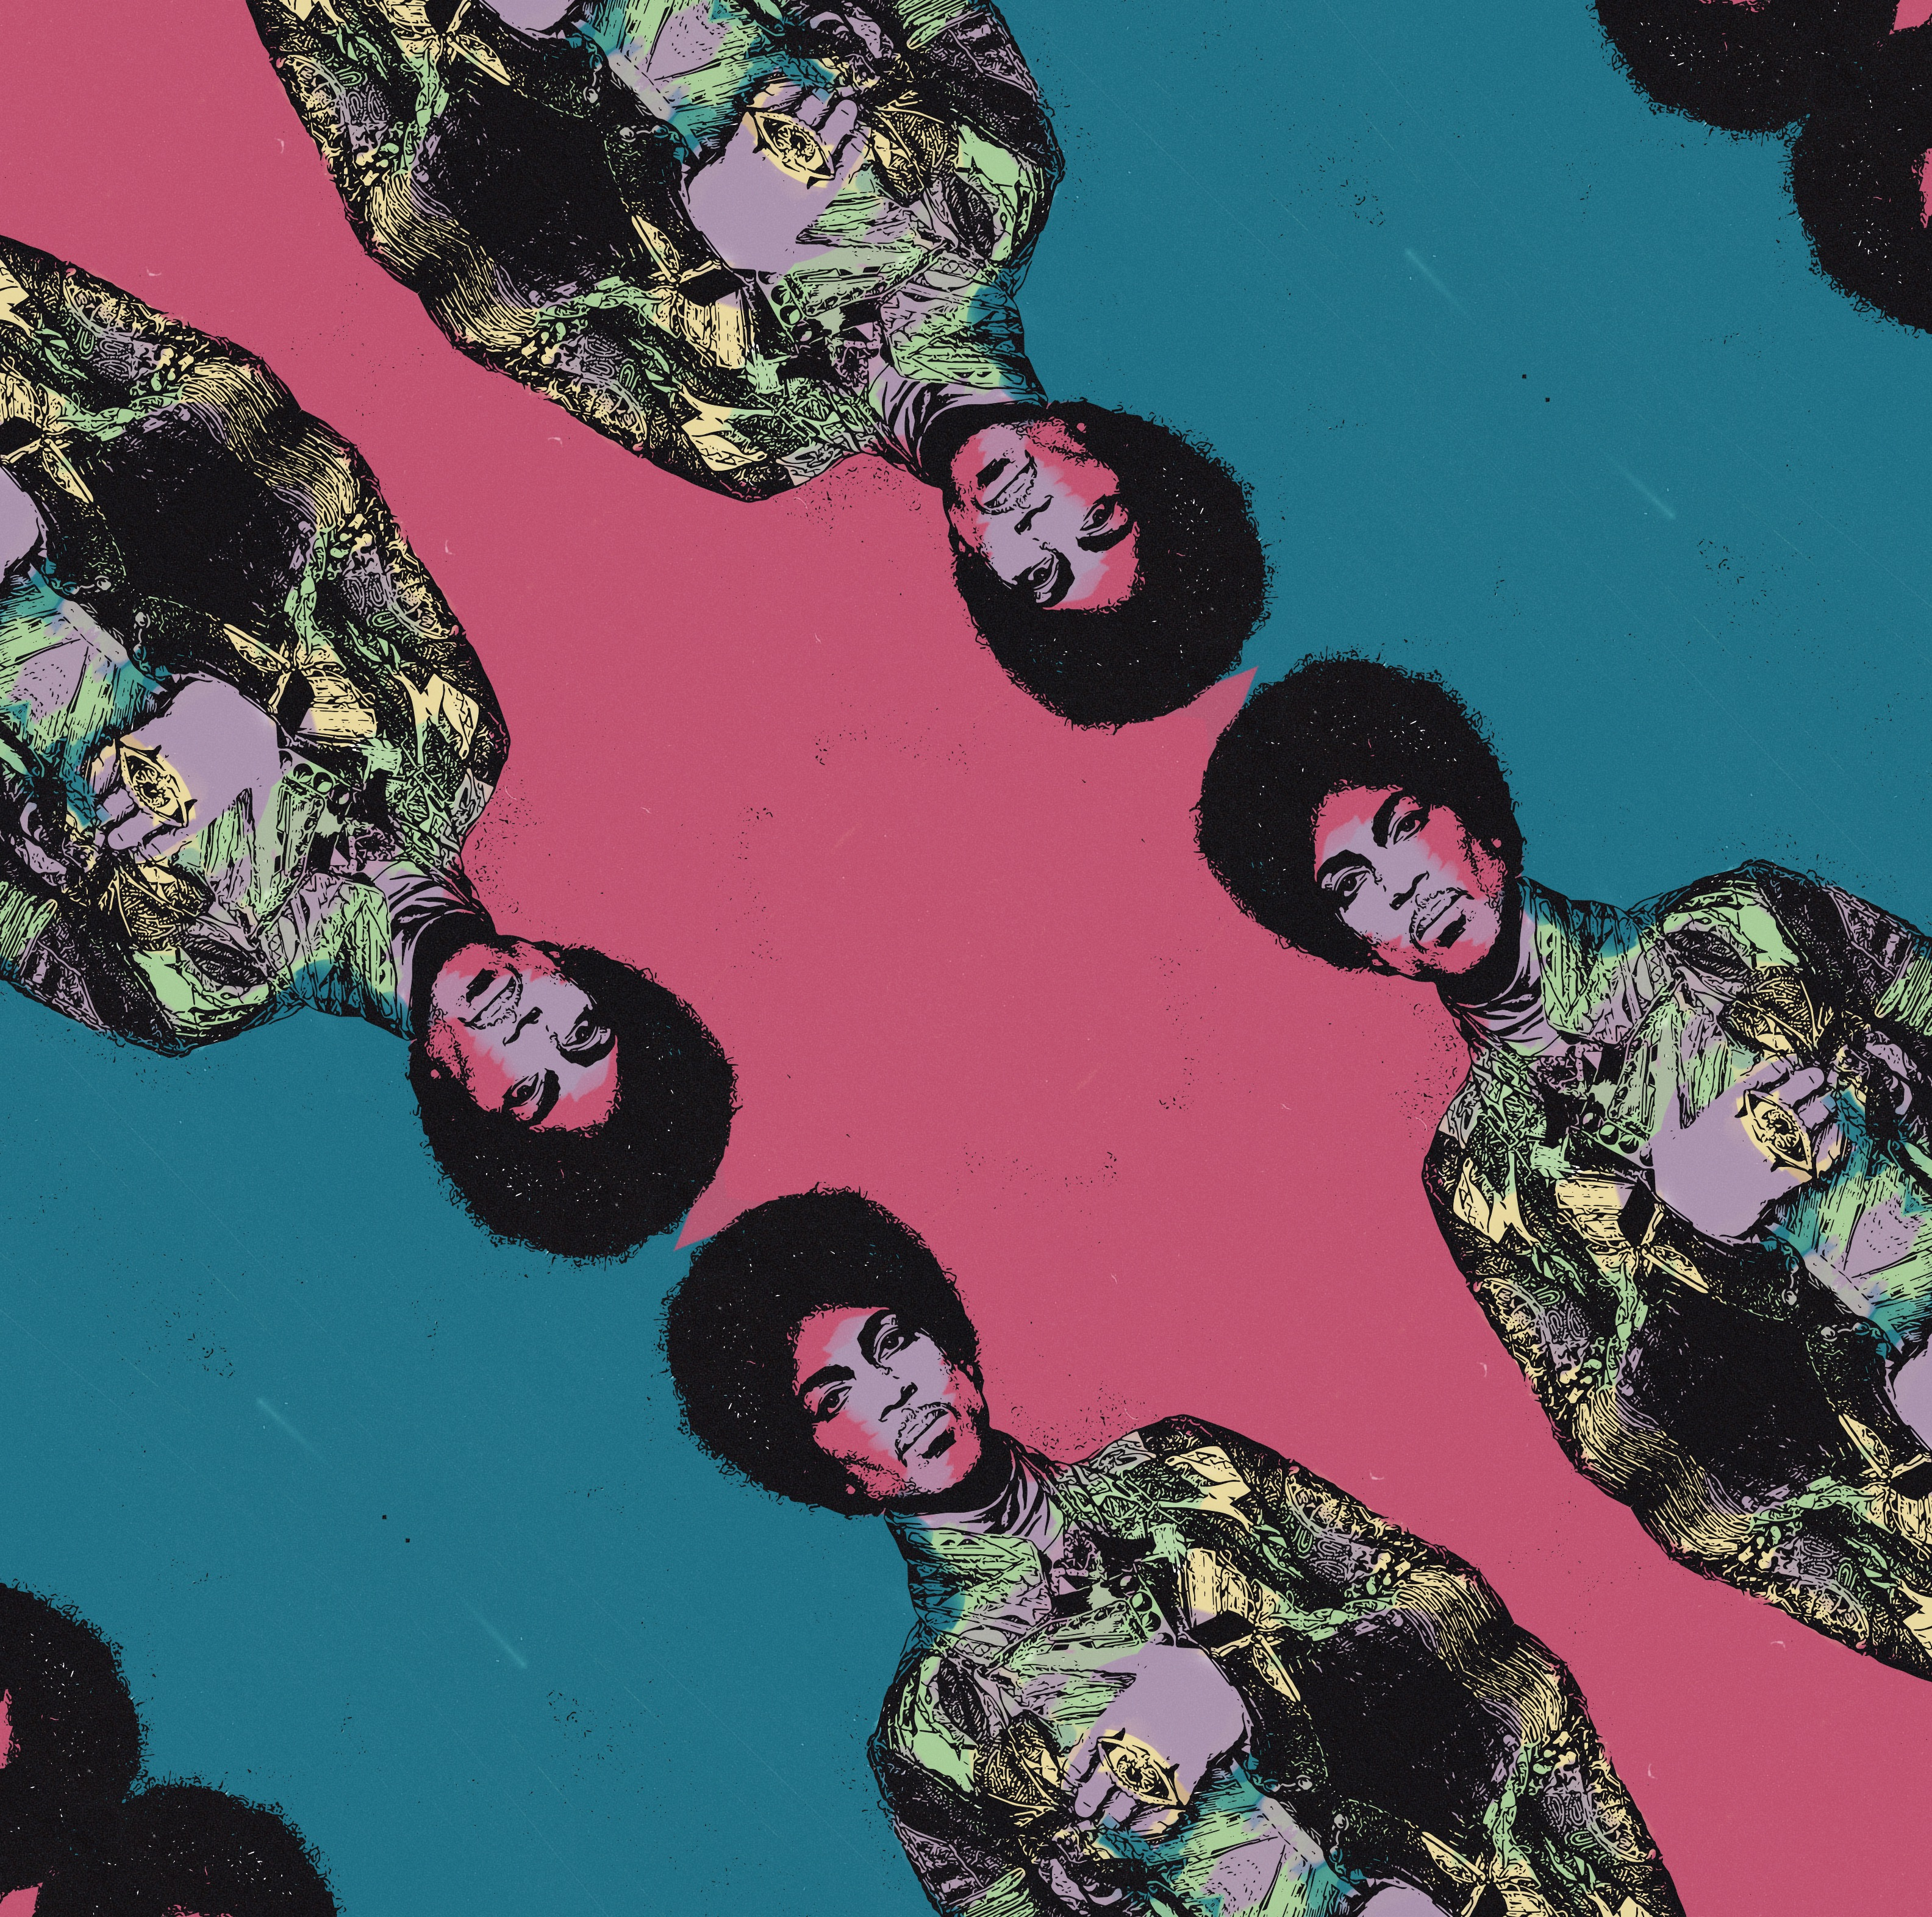 PRINCE PATTERNED | Sophie Barrott |  Art